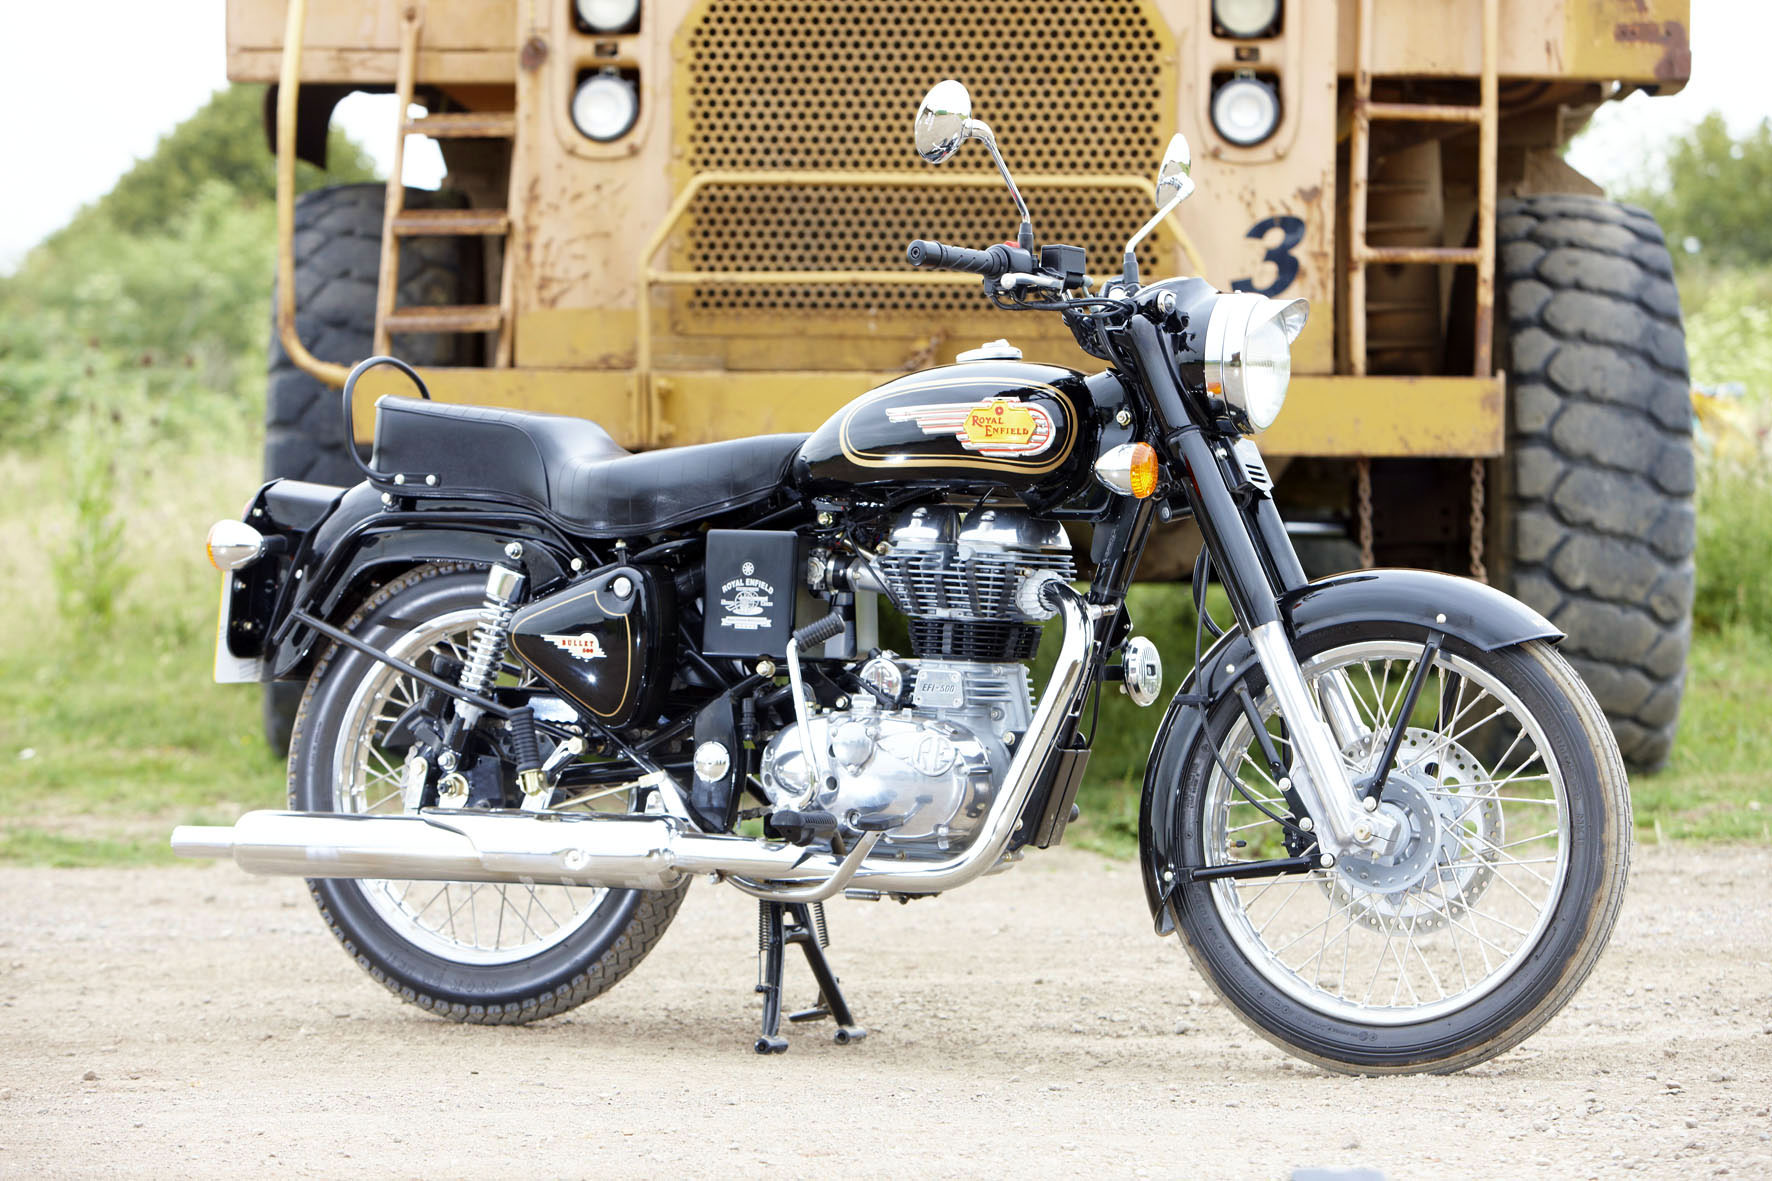 Royal Enfield Bullet 500 Army 2000 images #123250